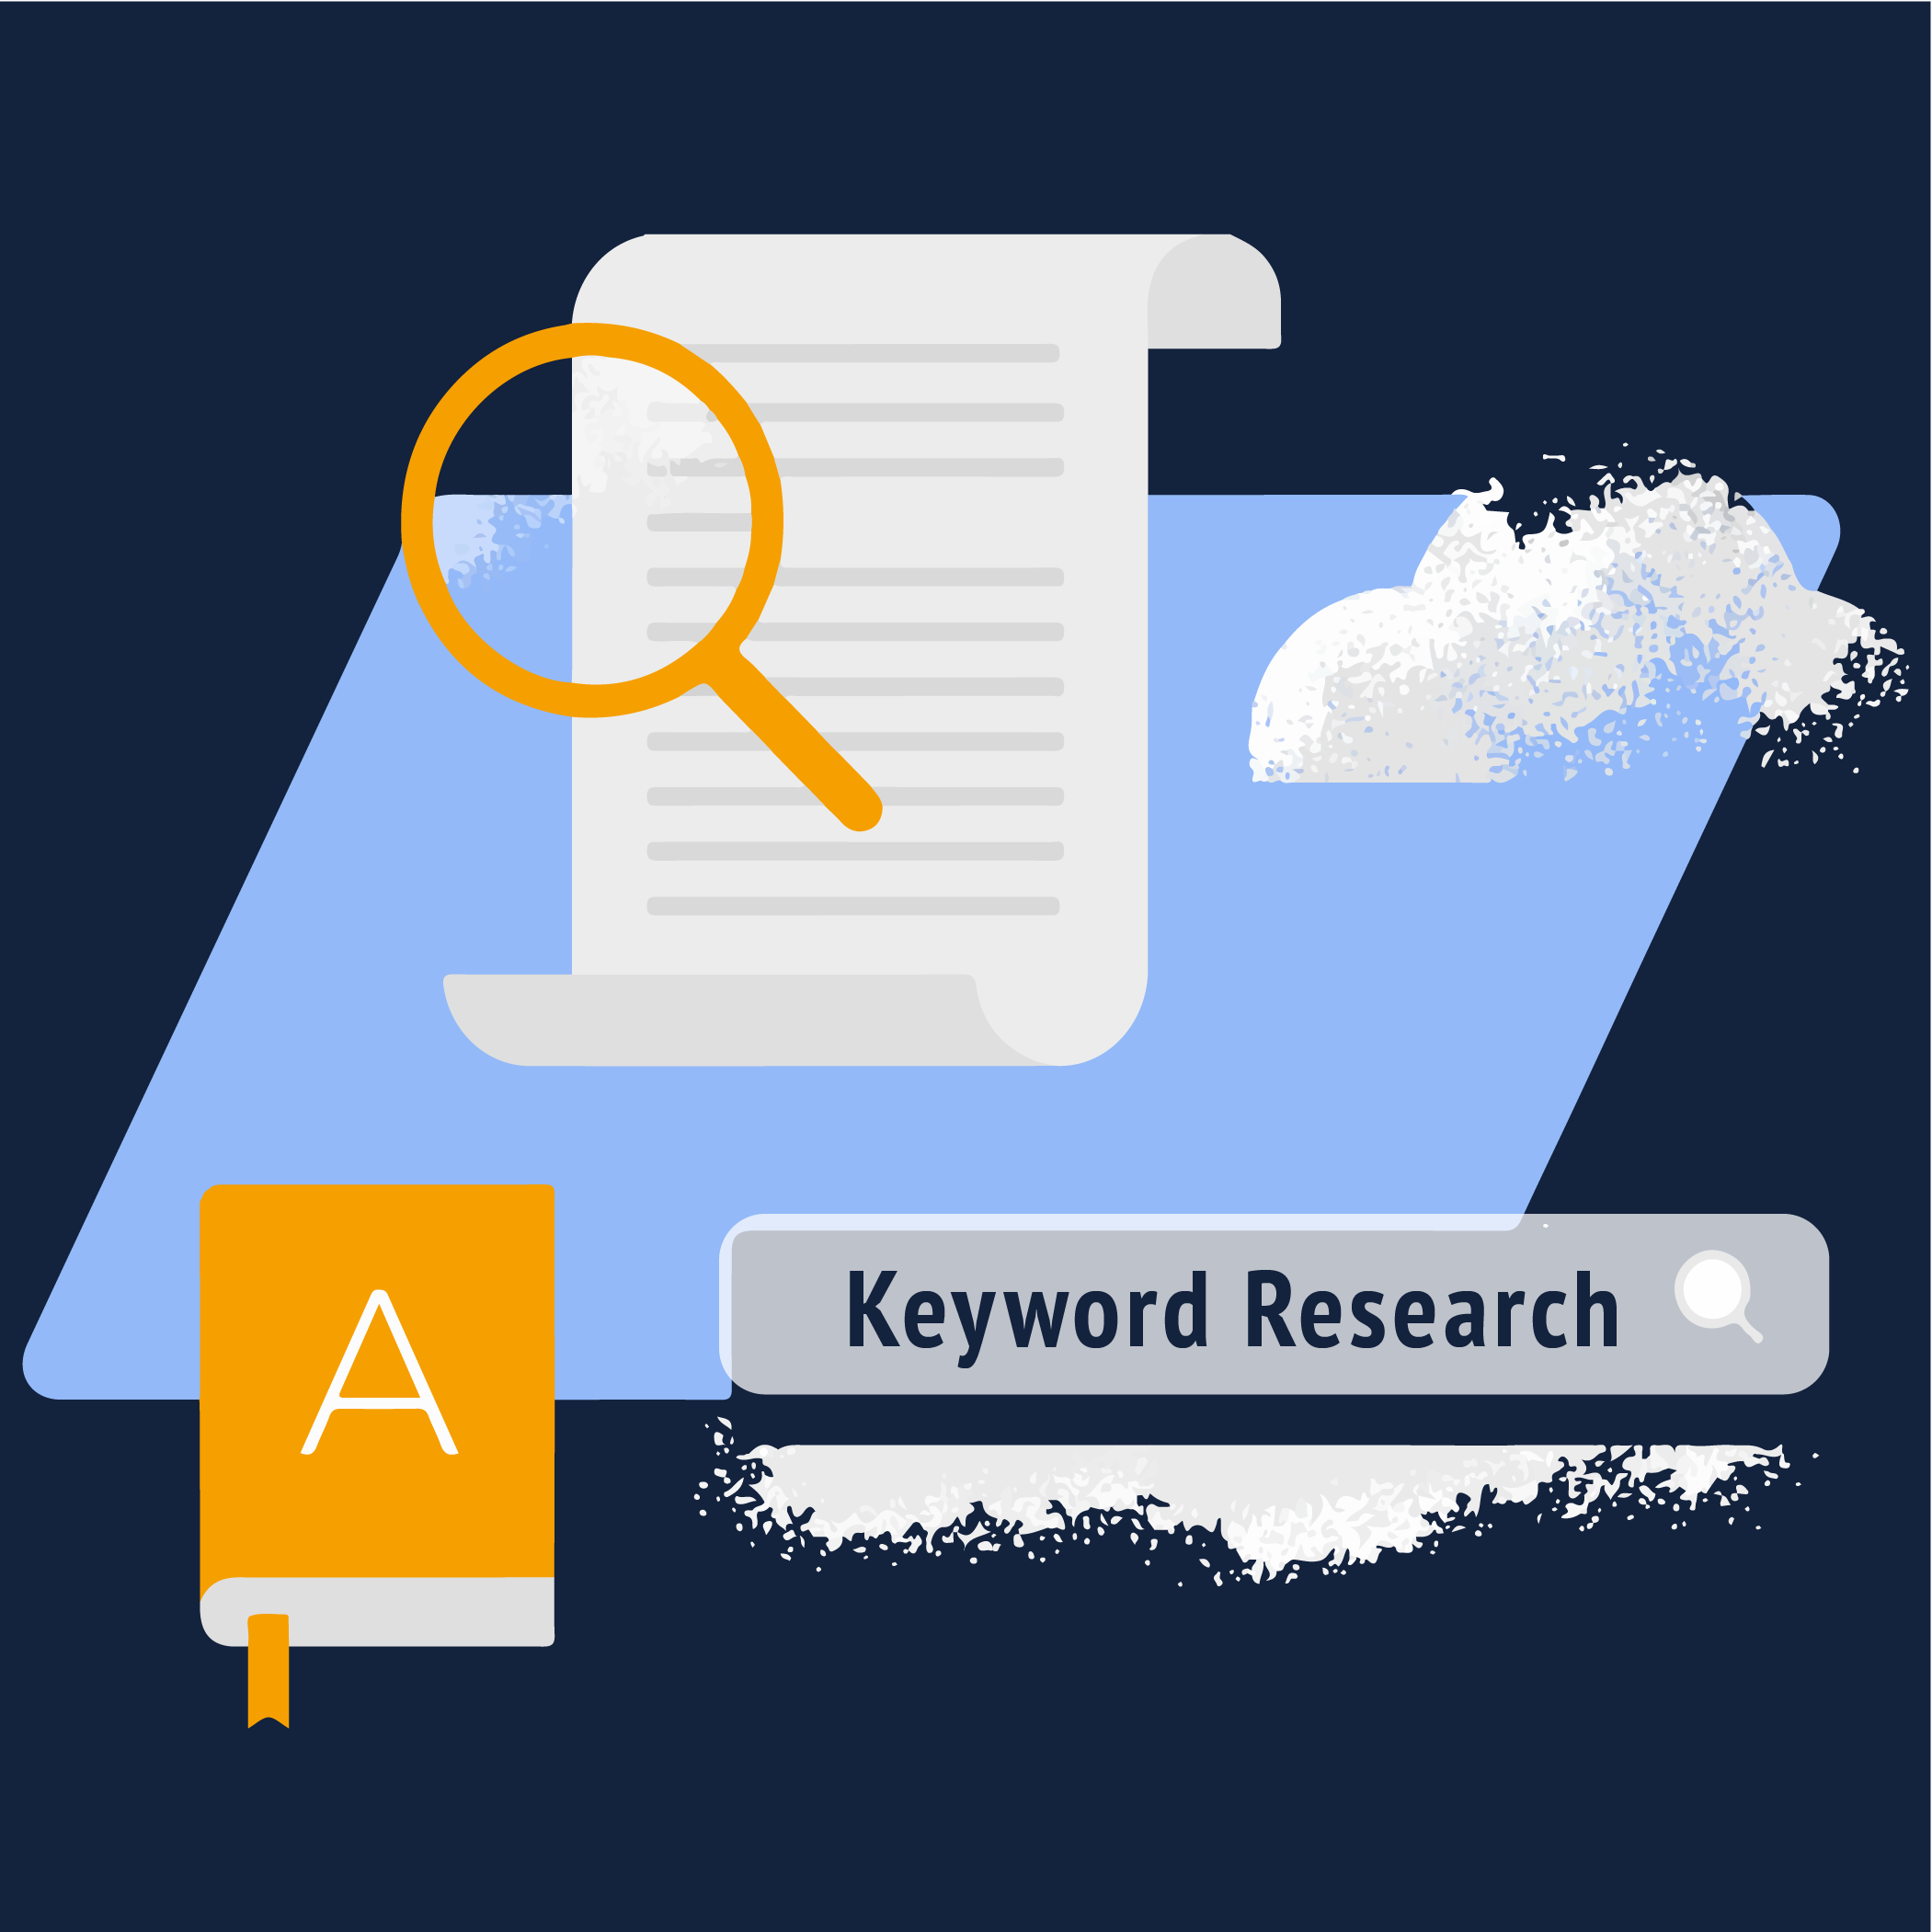 Keyword Research B2B Service for Marketing by Emma's Emmazon